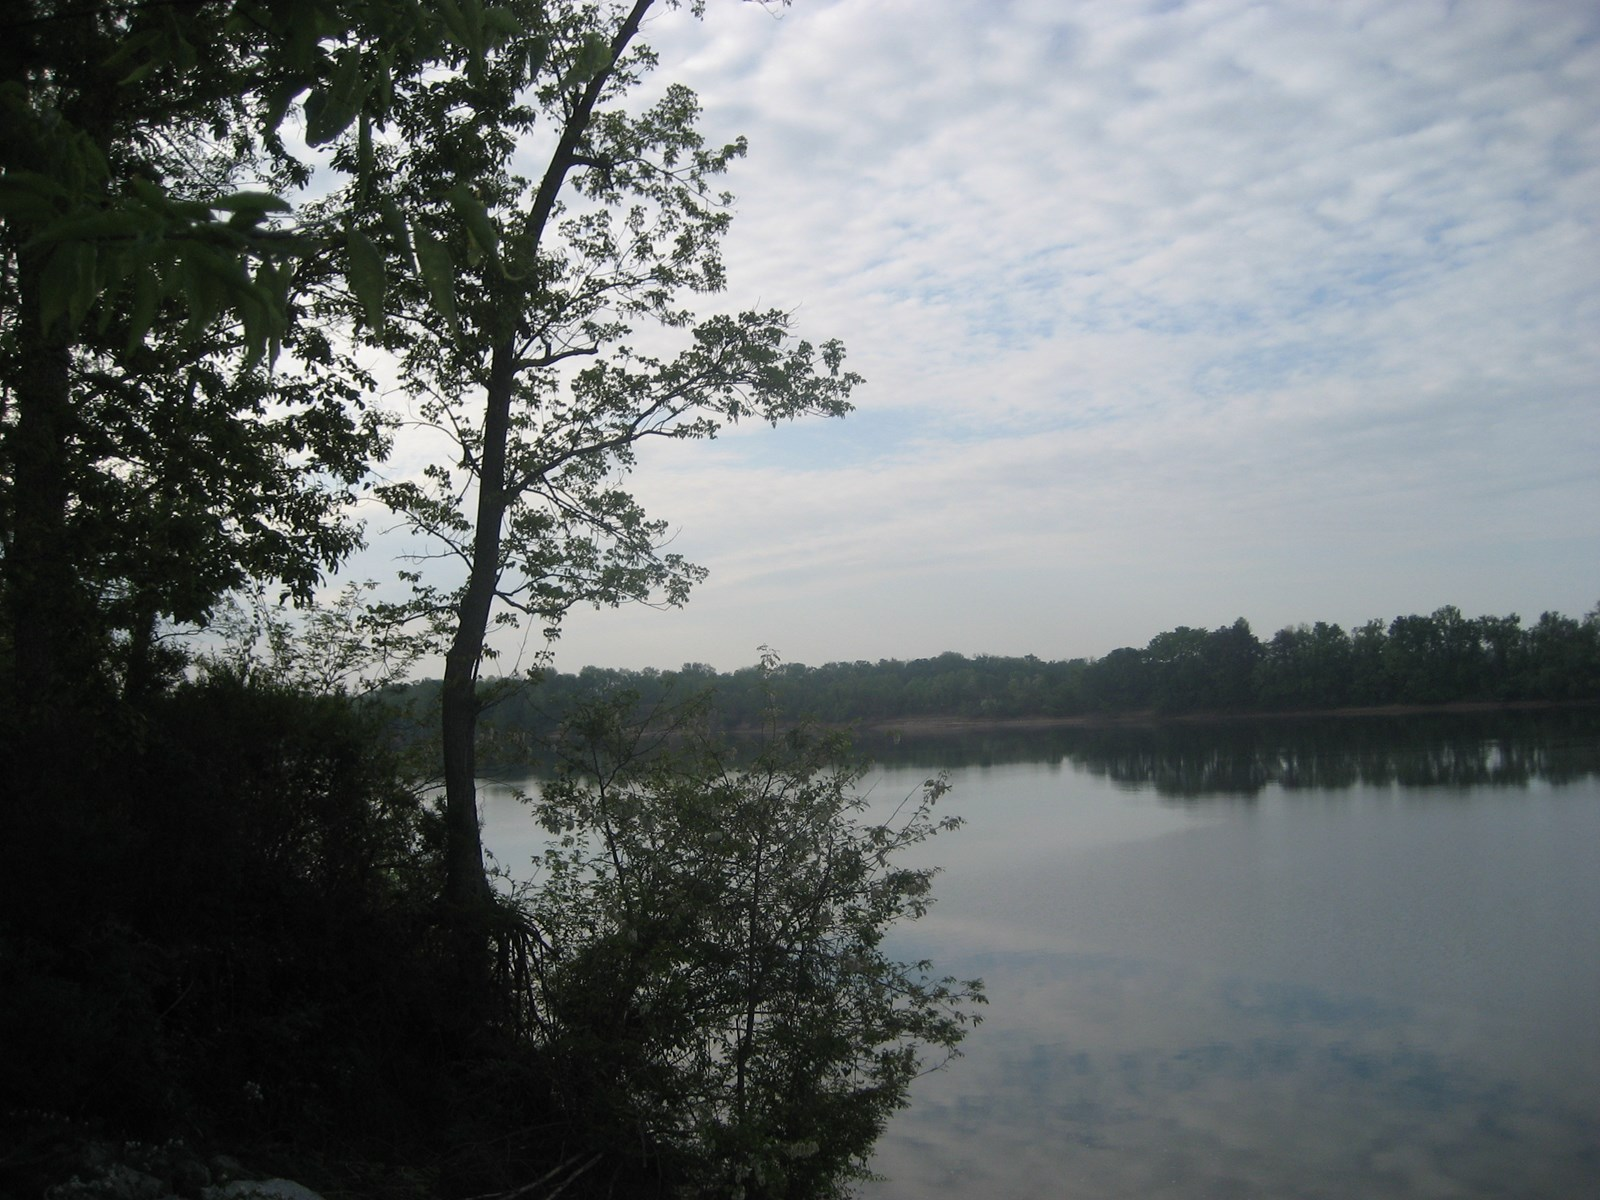 TN RIVER FRONT LAND FOR SALE WATERFRONT LAND, VIEWS, FISHING